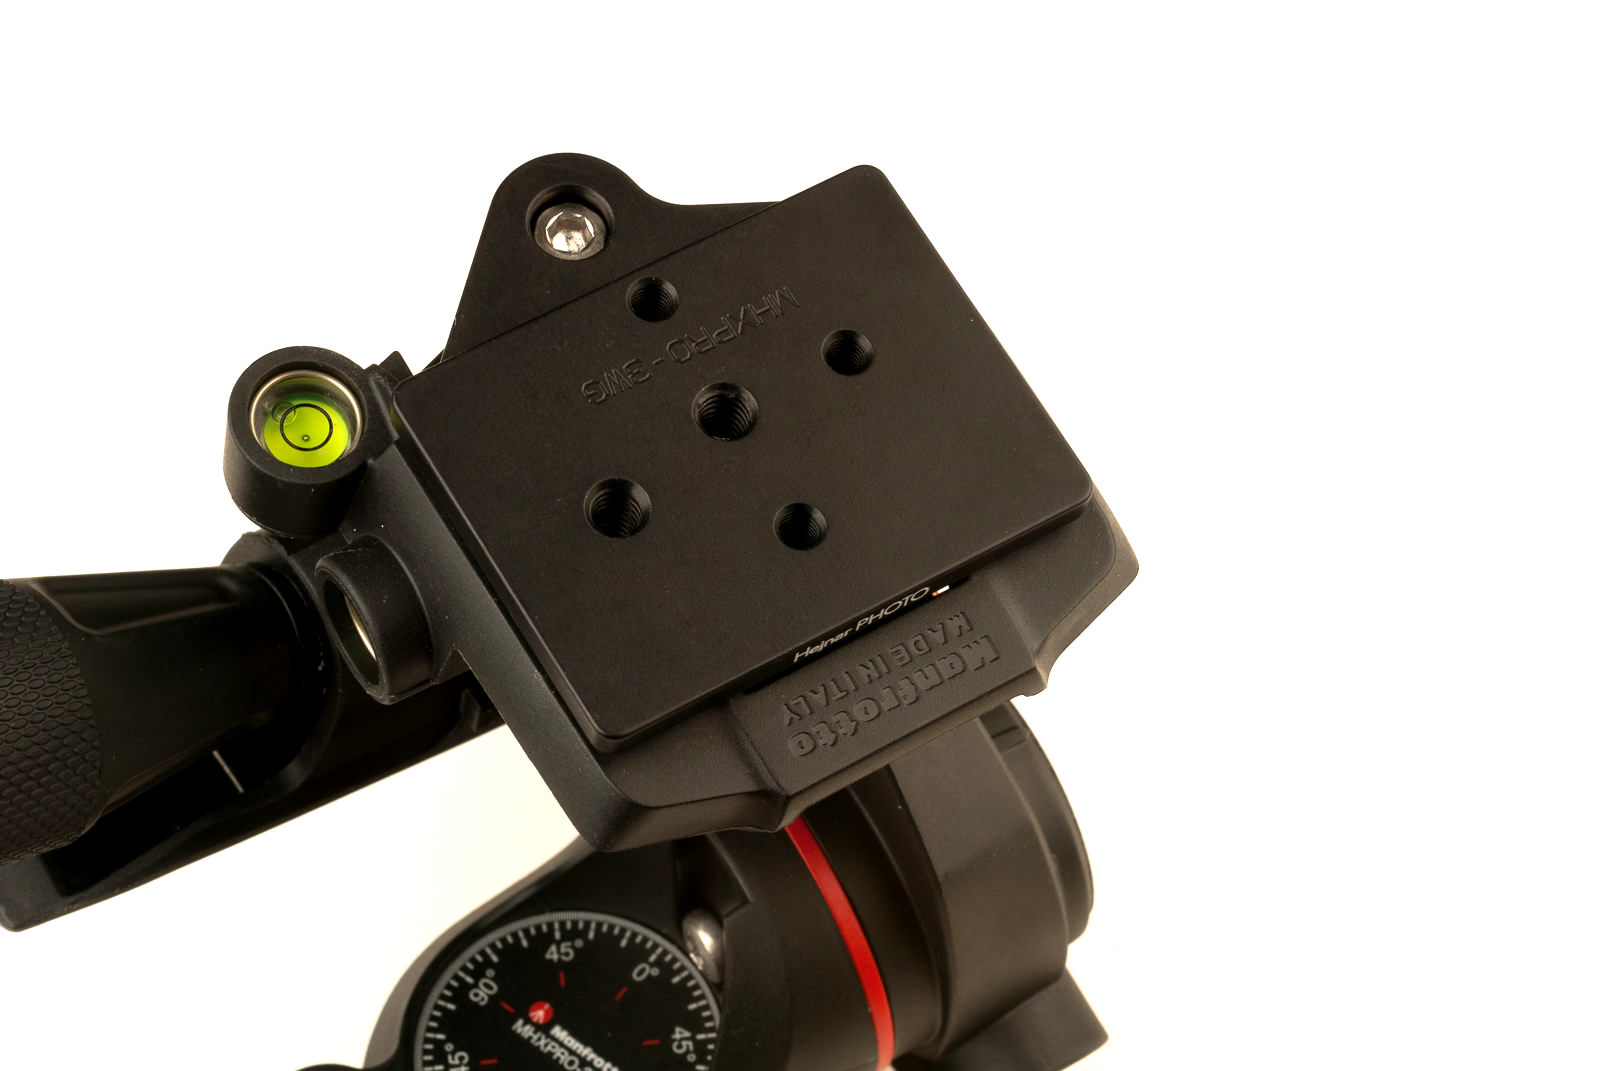 Hejnar Photo Conversion Plate installed on Manfrotto MHXPRO-3WG